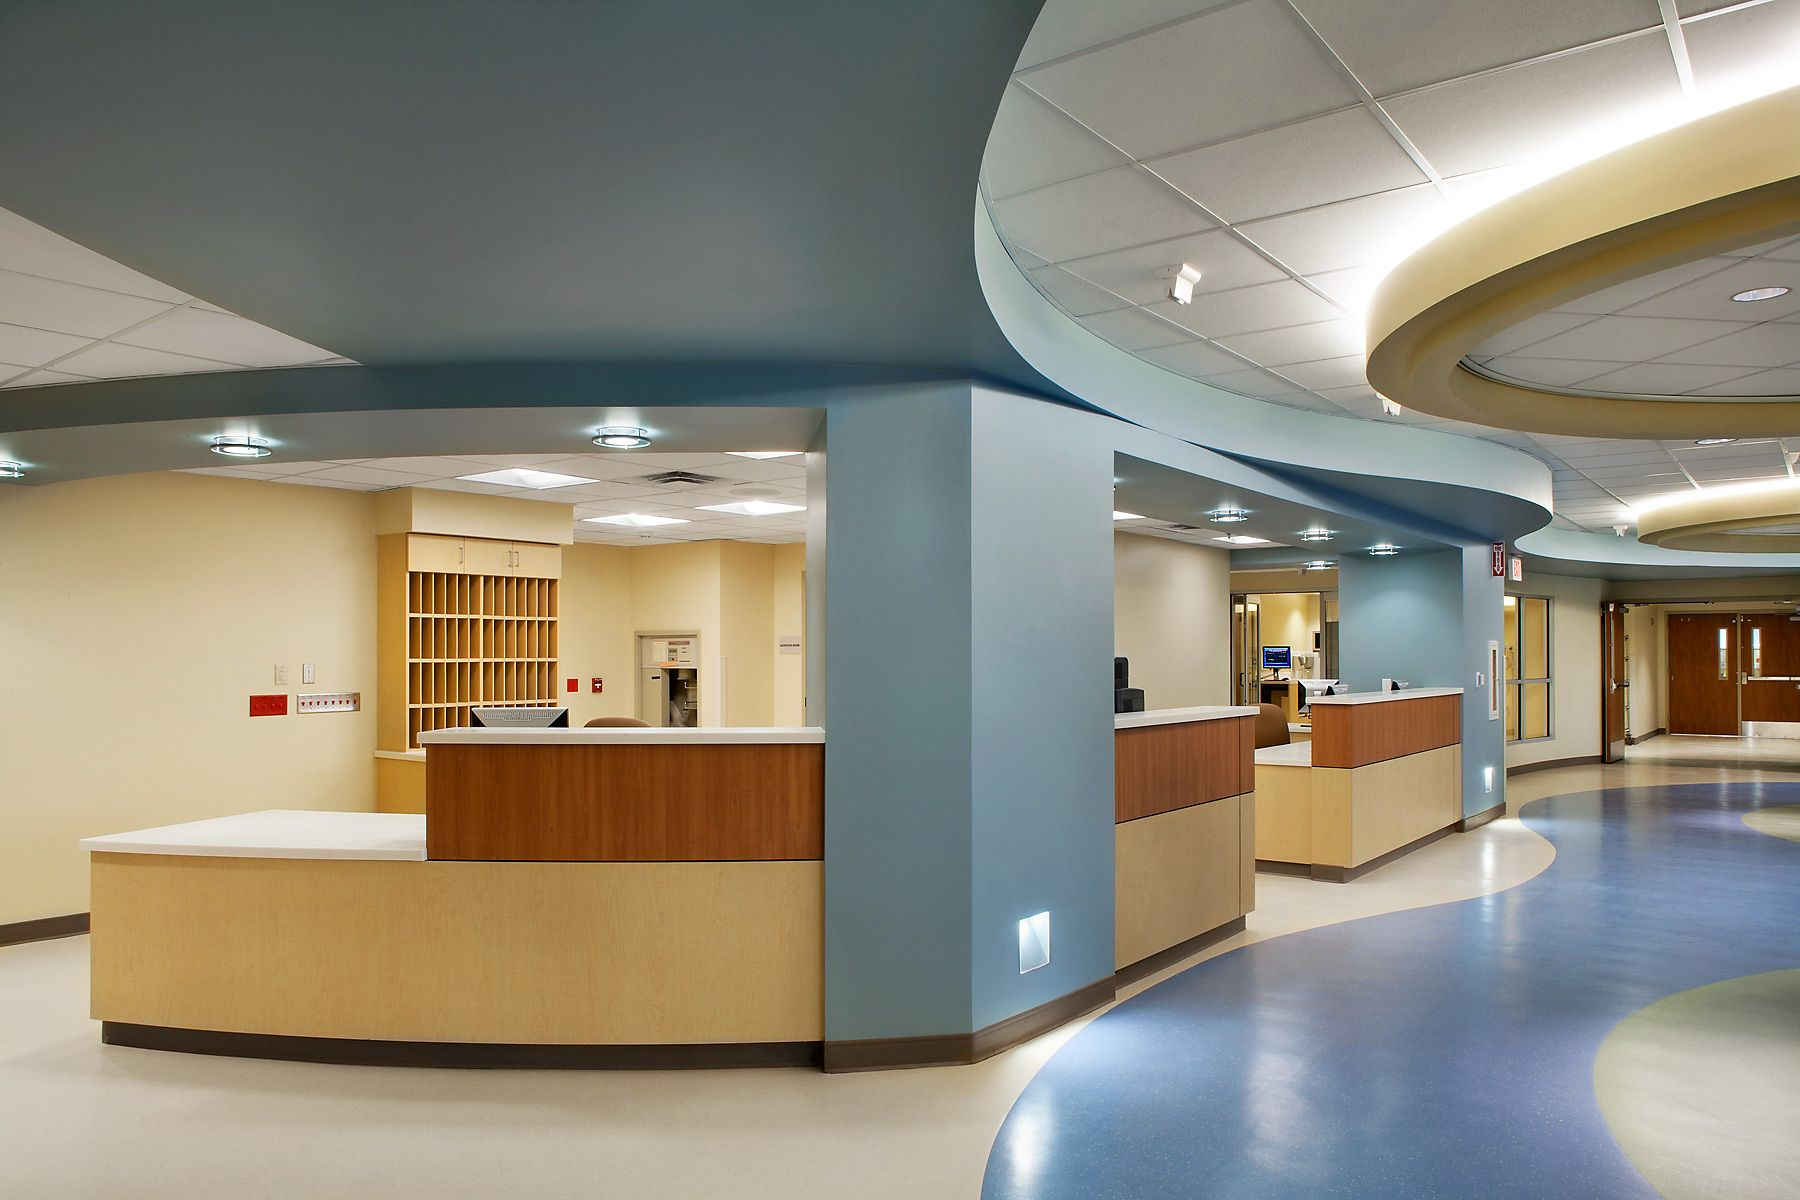 Saint Thomas Midtown Hospital NICU | Nashville, TNGeneral Contractor - Turner Construction Company